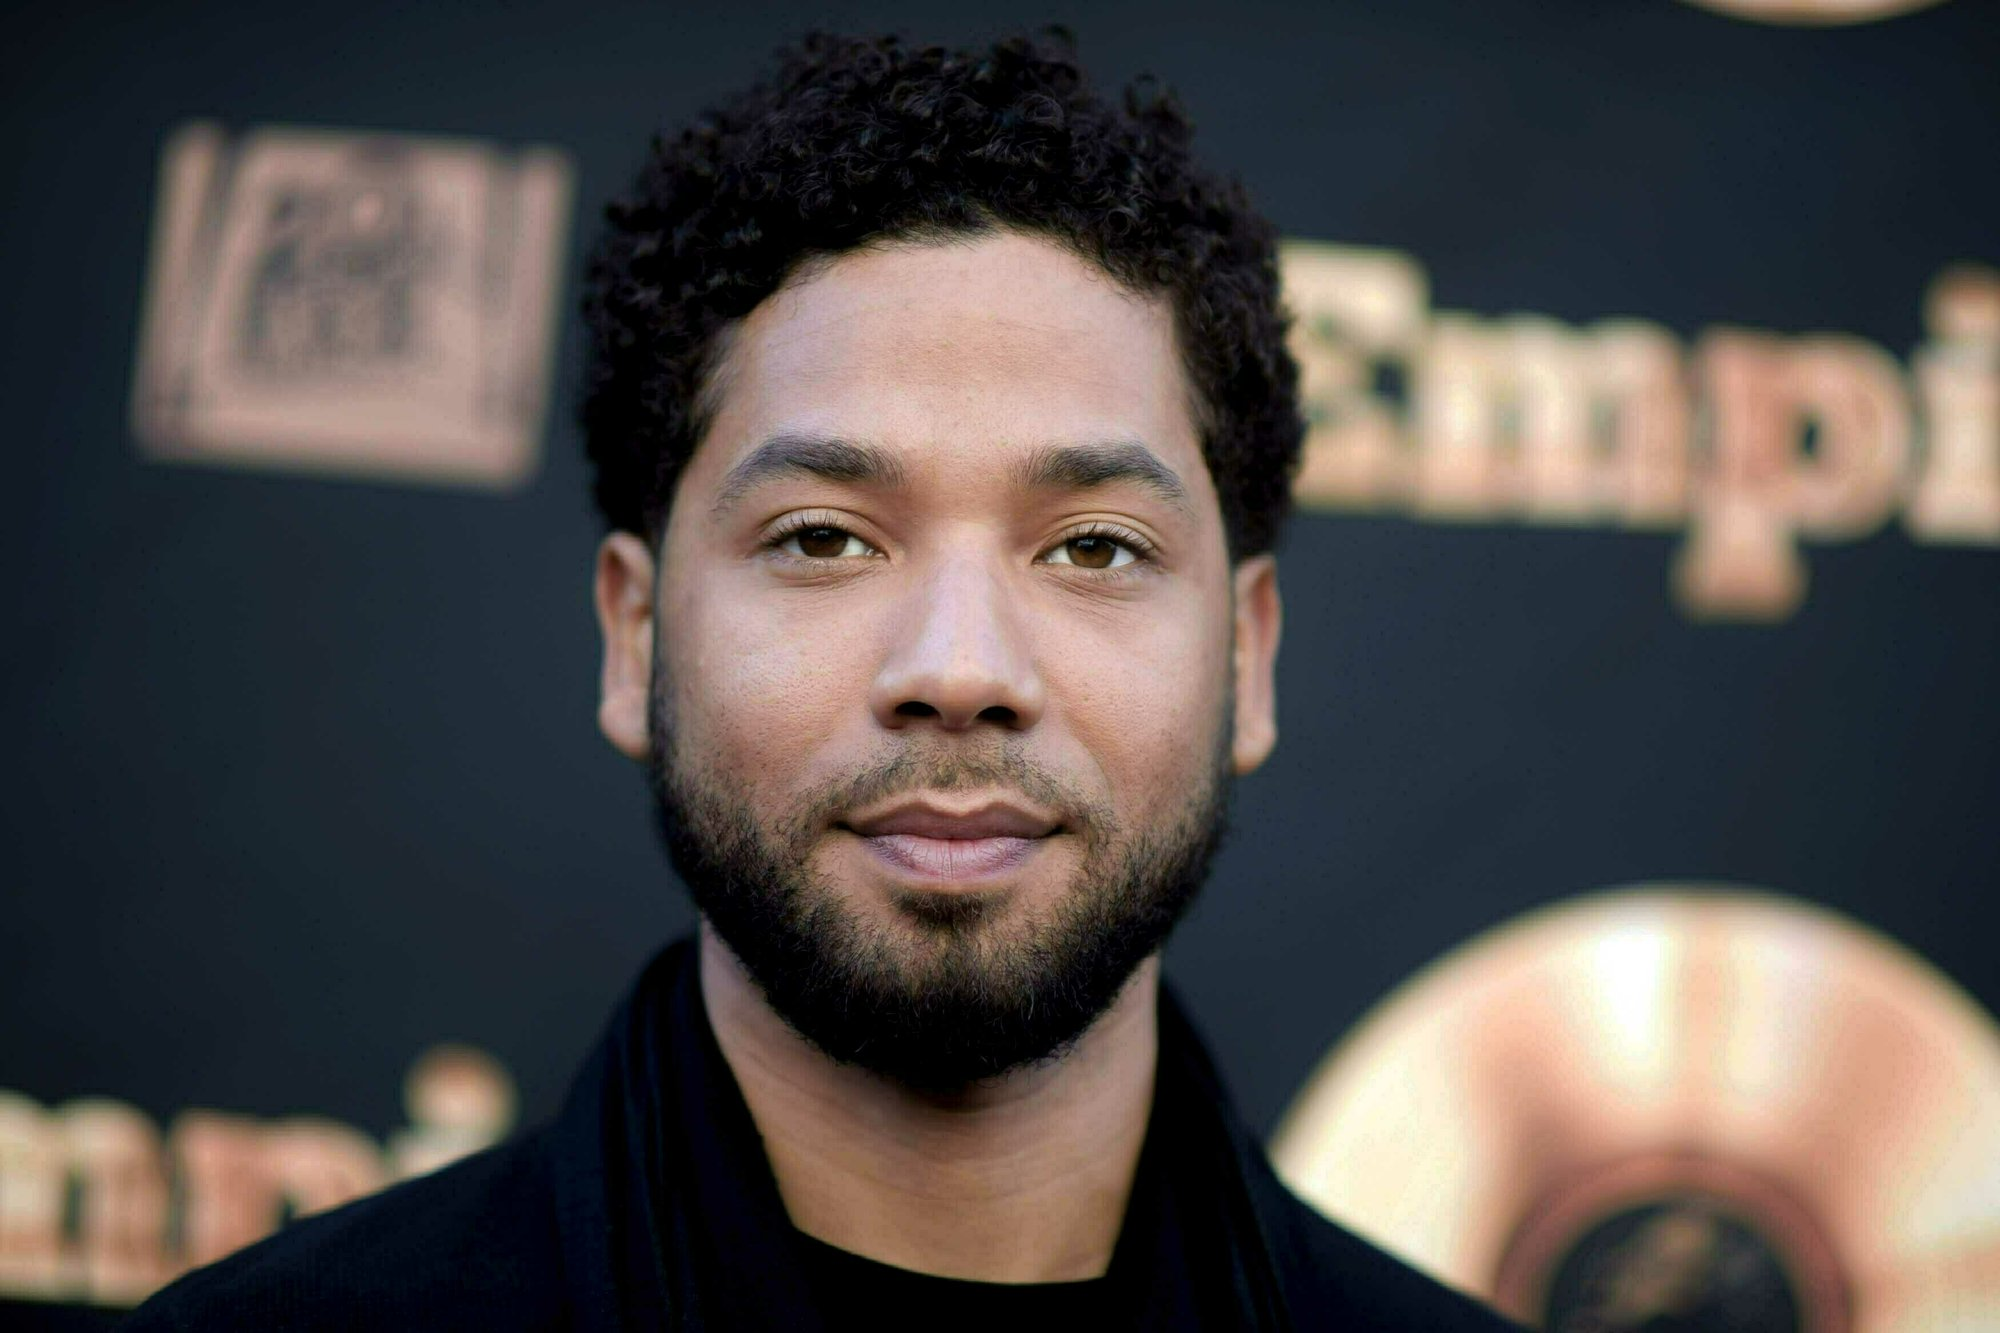 'Empire' actor charged with making false police report